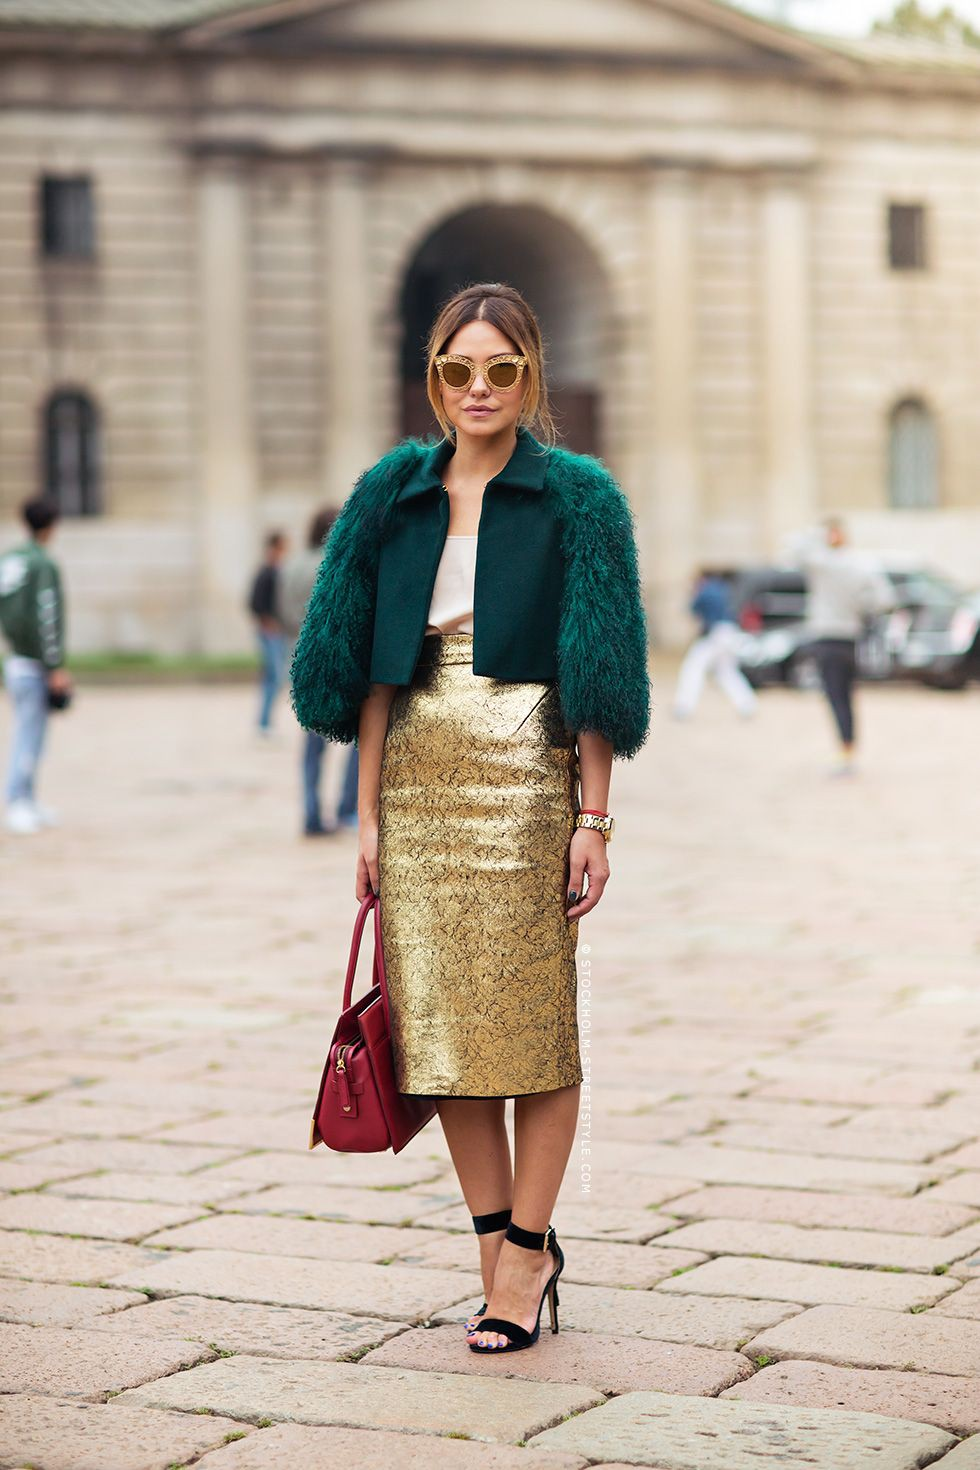 Turquoise and yellow outfit Stylevore with pencil skirt, skirt